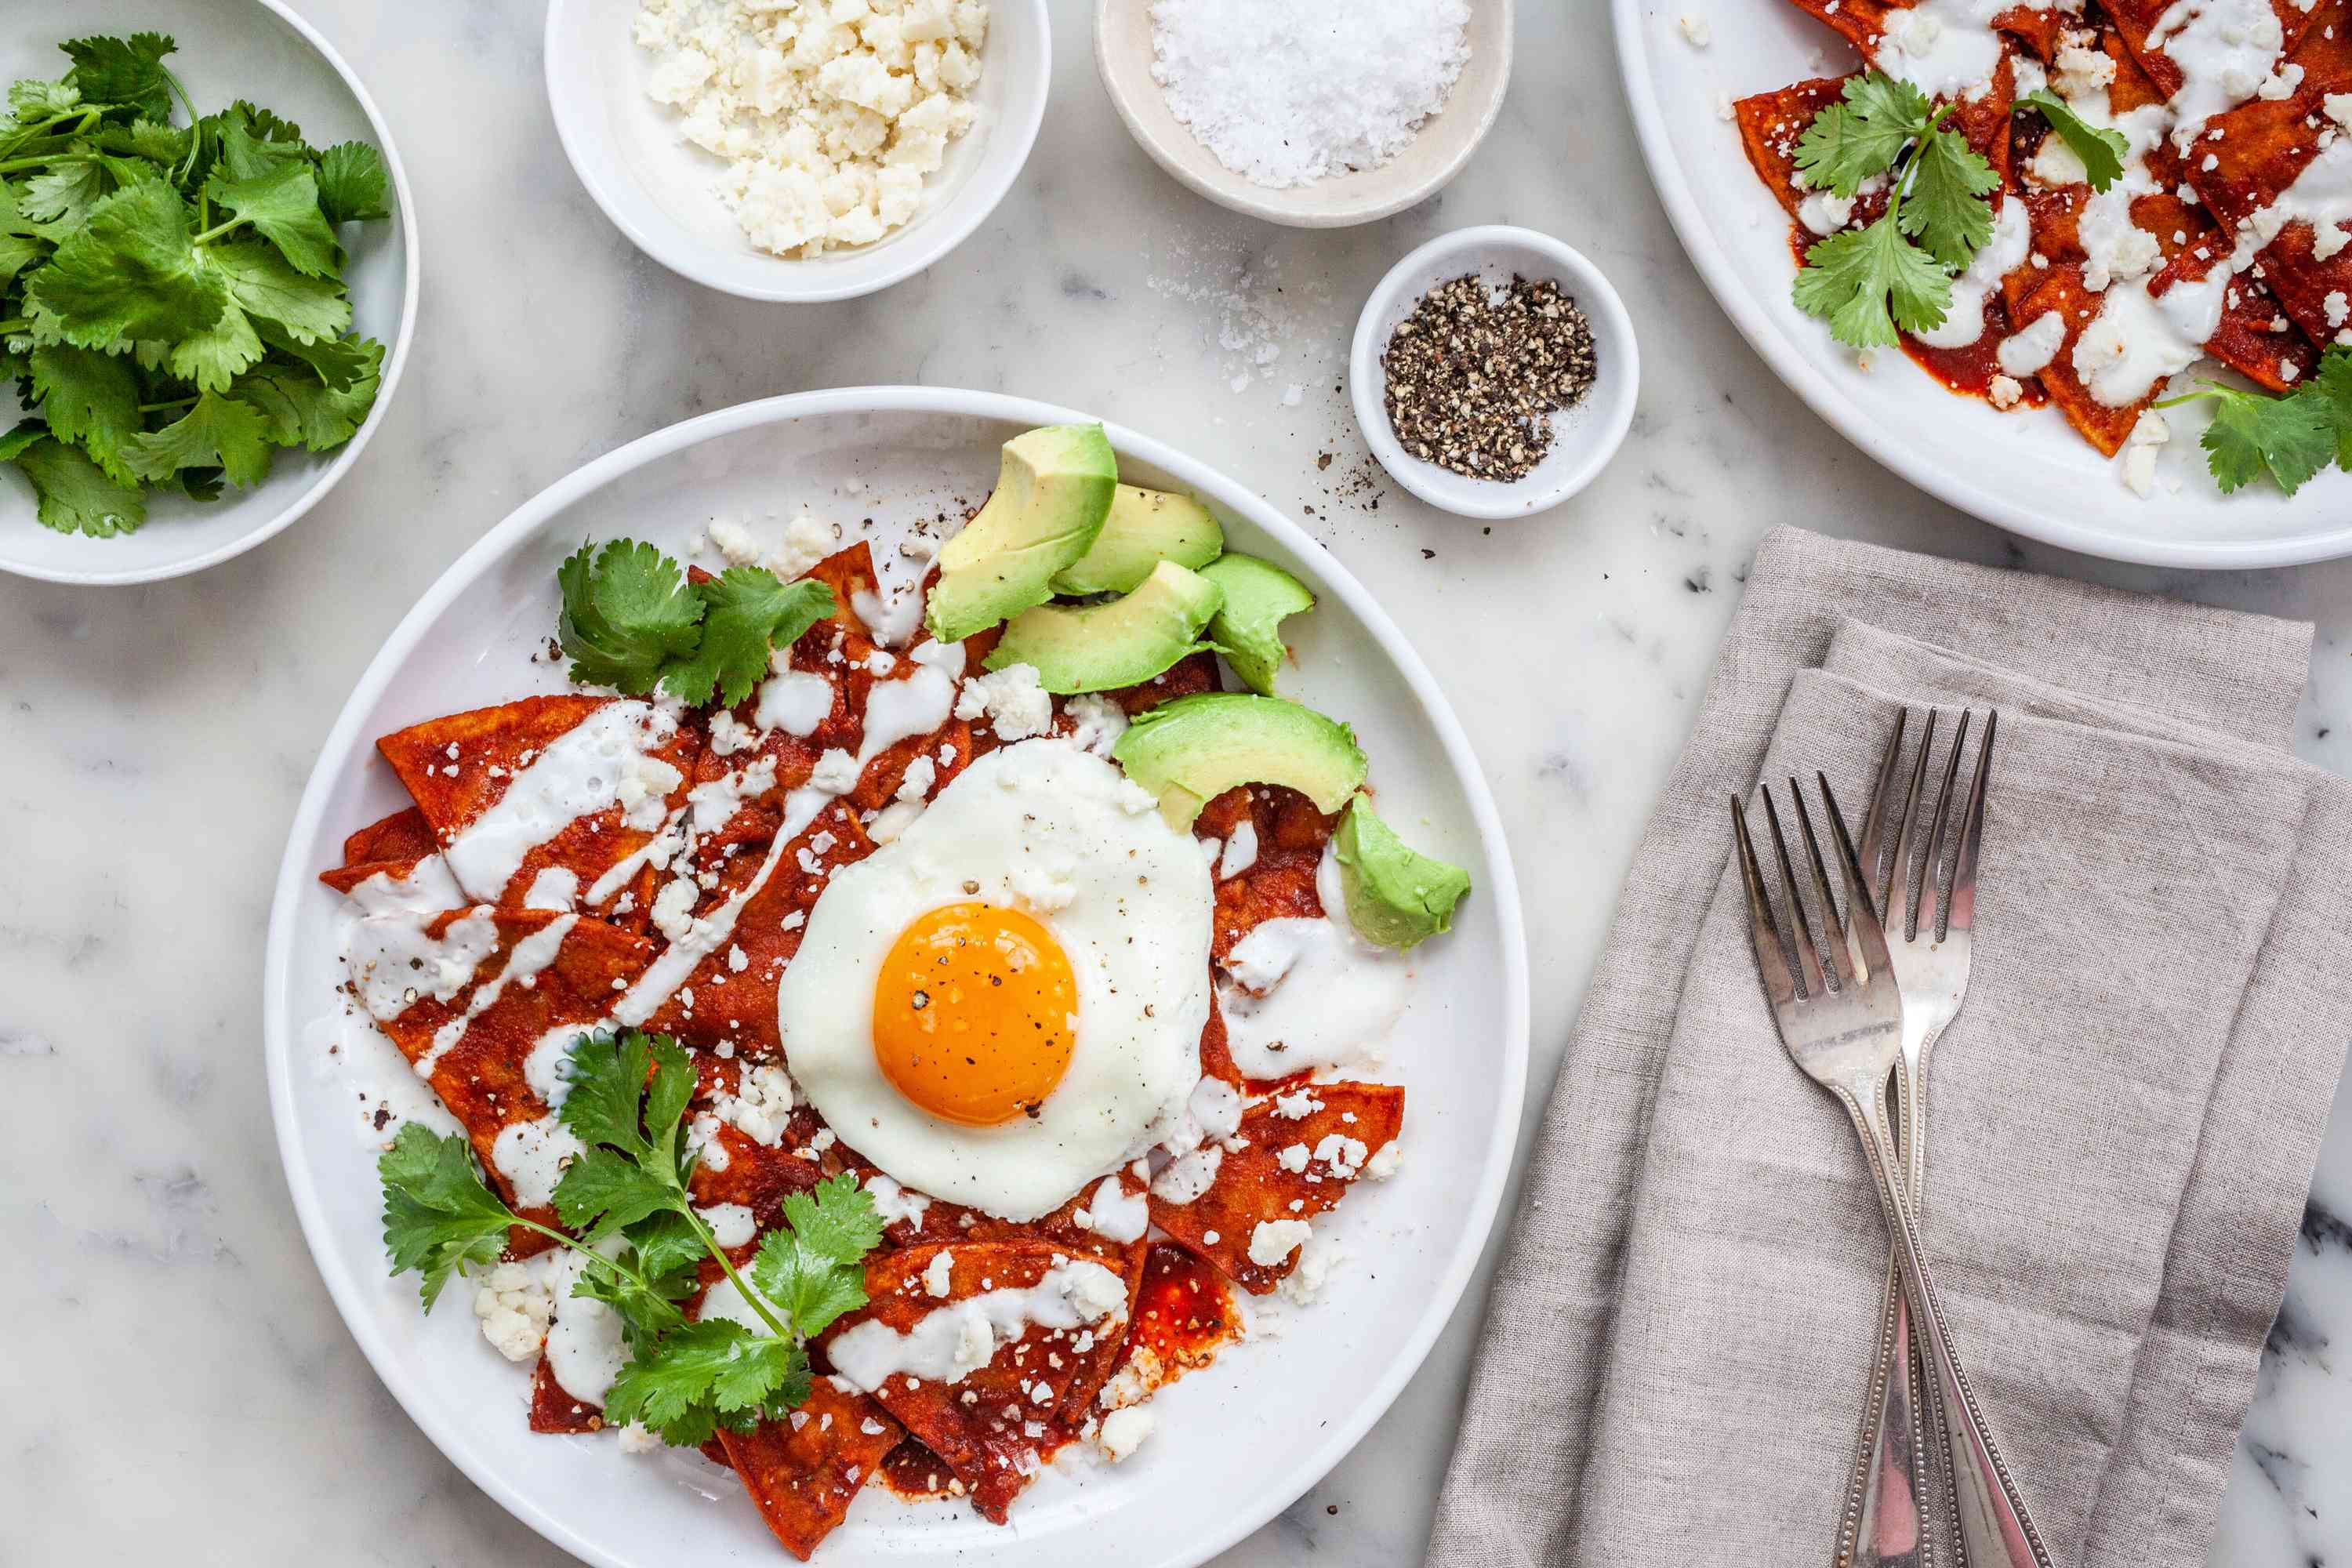 Chilaquiles on a plate with extra toppings around the plate.